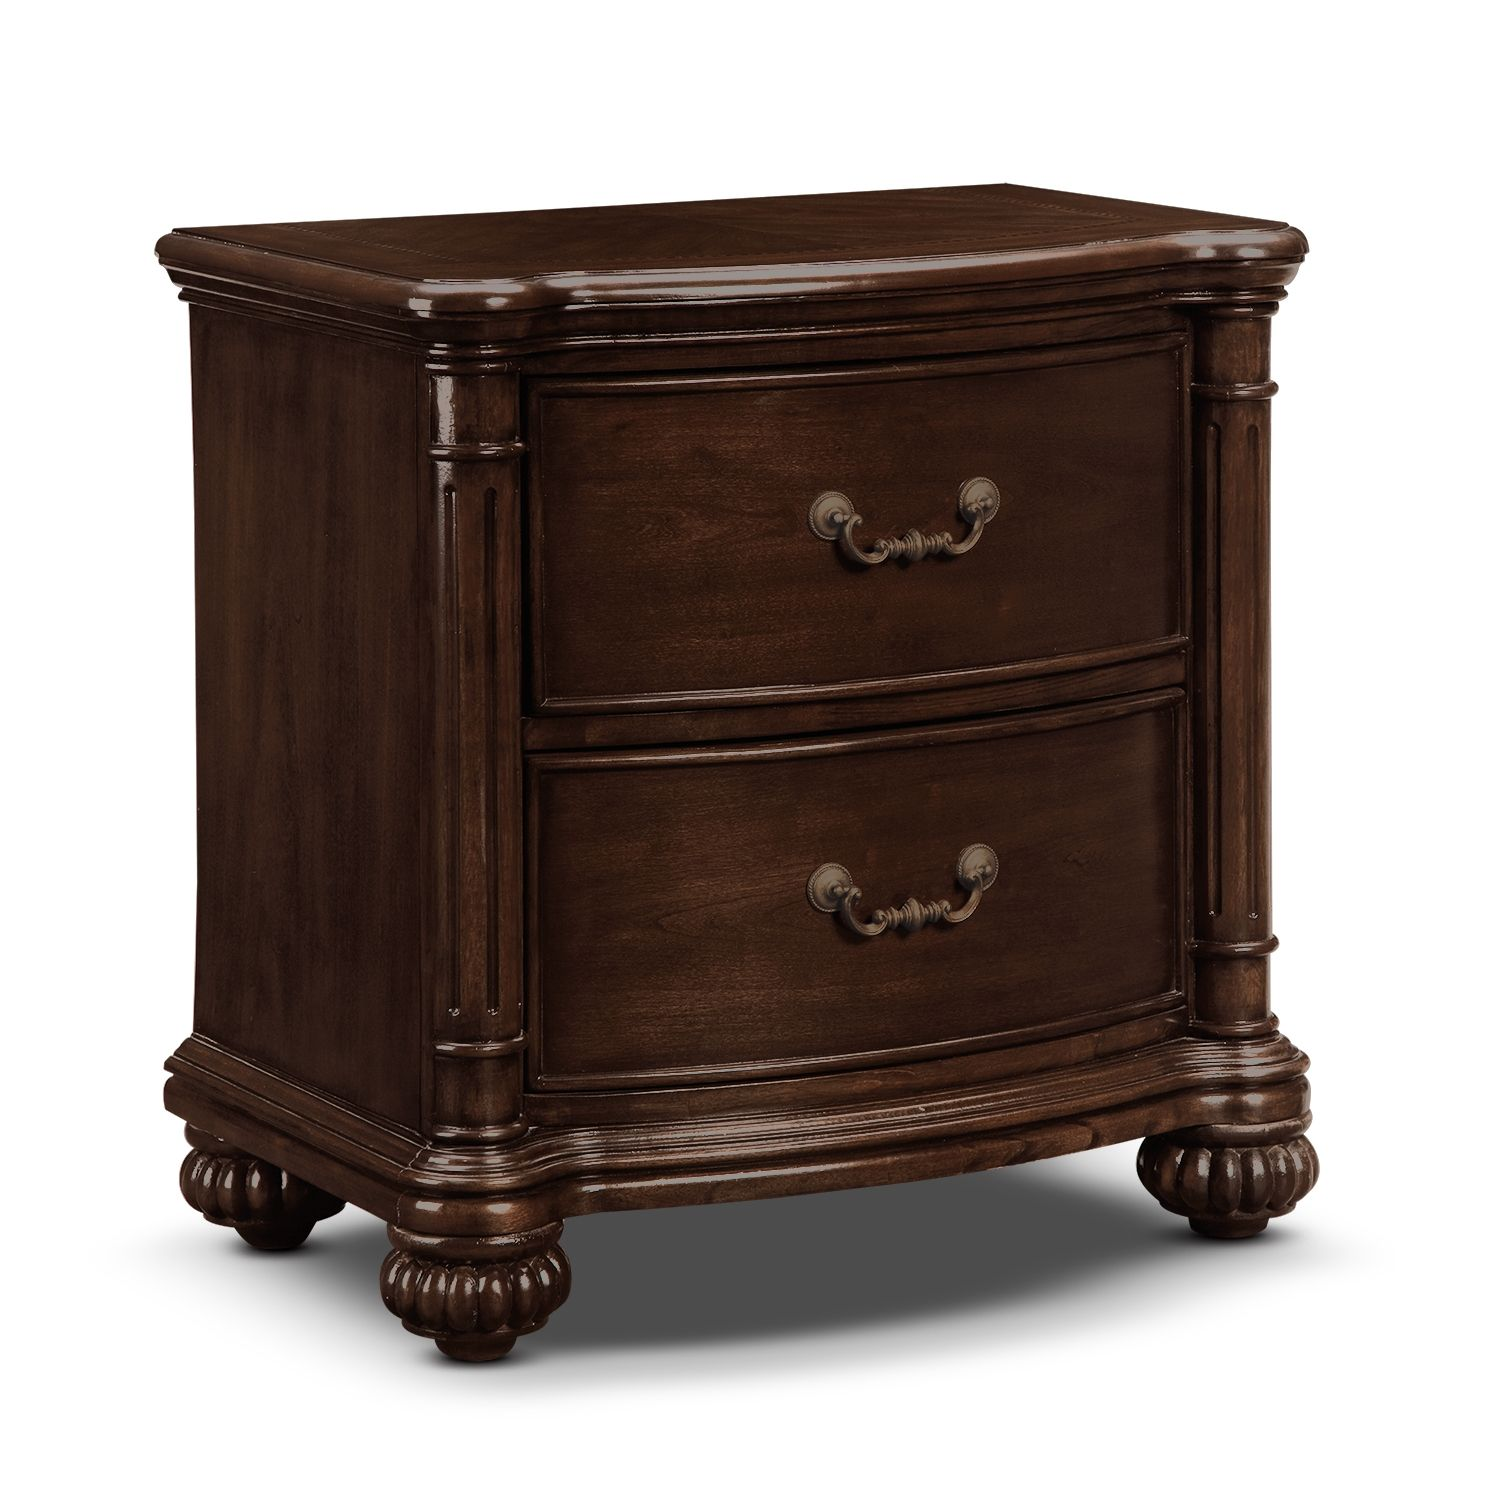 Bedroom furniture derbyshire nightstand